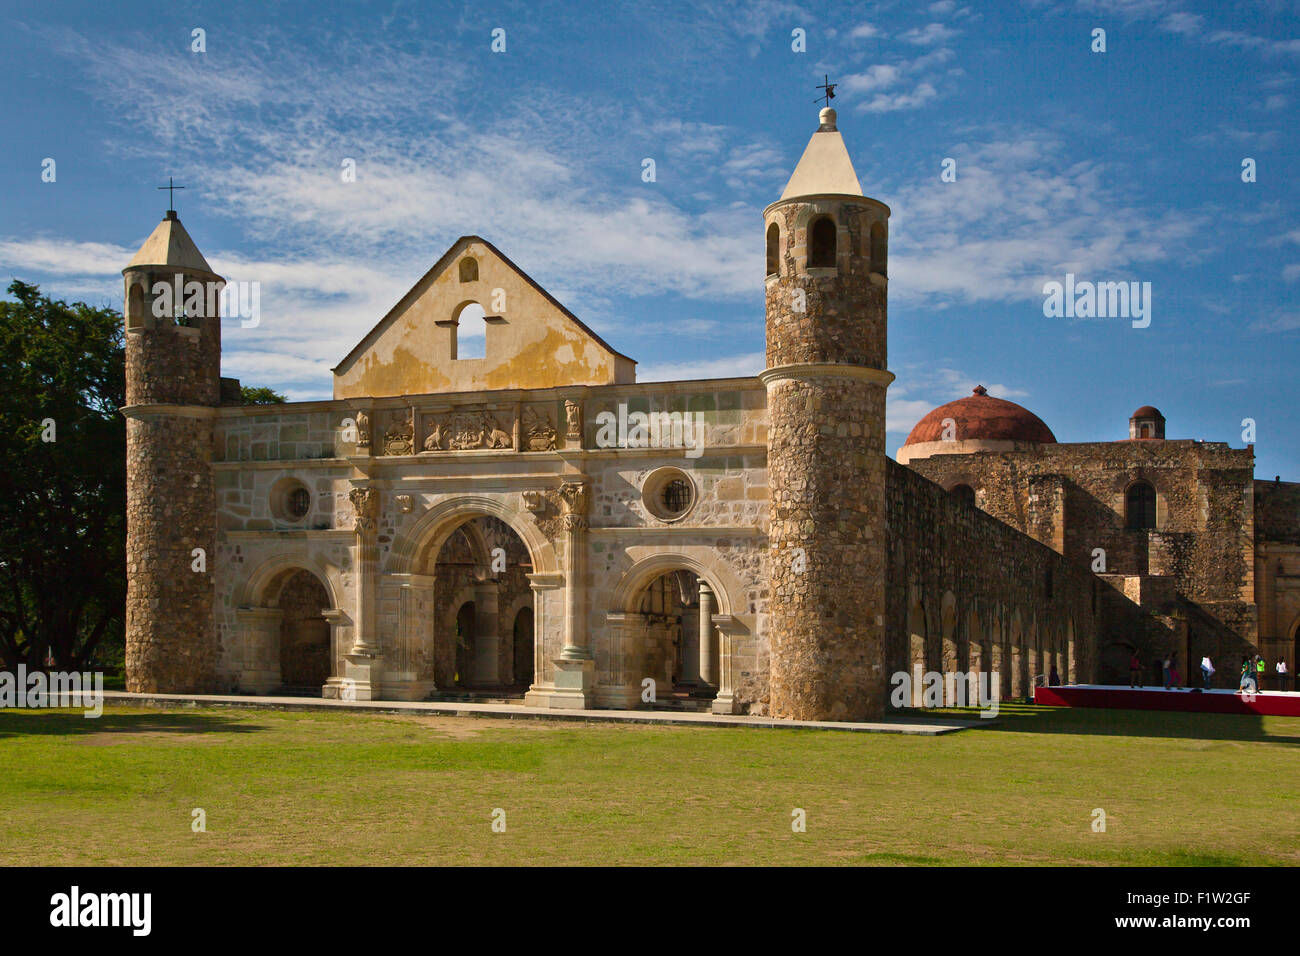 The 16th century CONVENT and BASILICA of CUILAPAN was the former Monastery of Santiago Apostol - CUILAPAN DE GUERRERO, Stock Photo